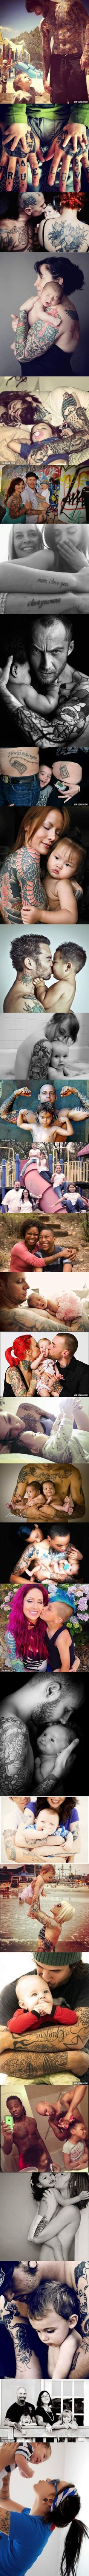 Having tattoos or piercings doesnt make you a bad parent, these pictures touched my heart ♡